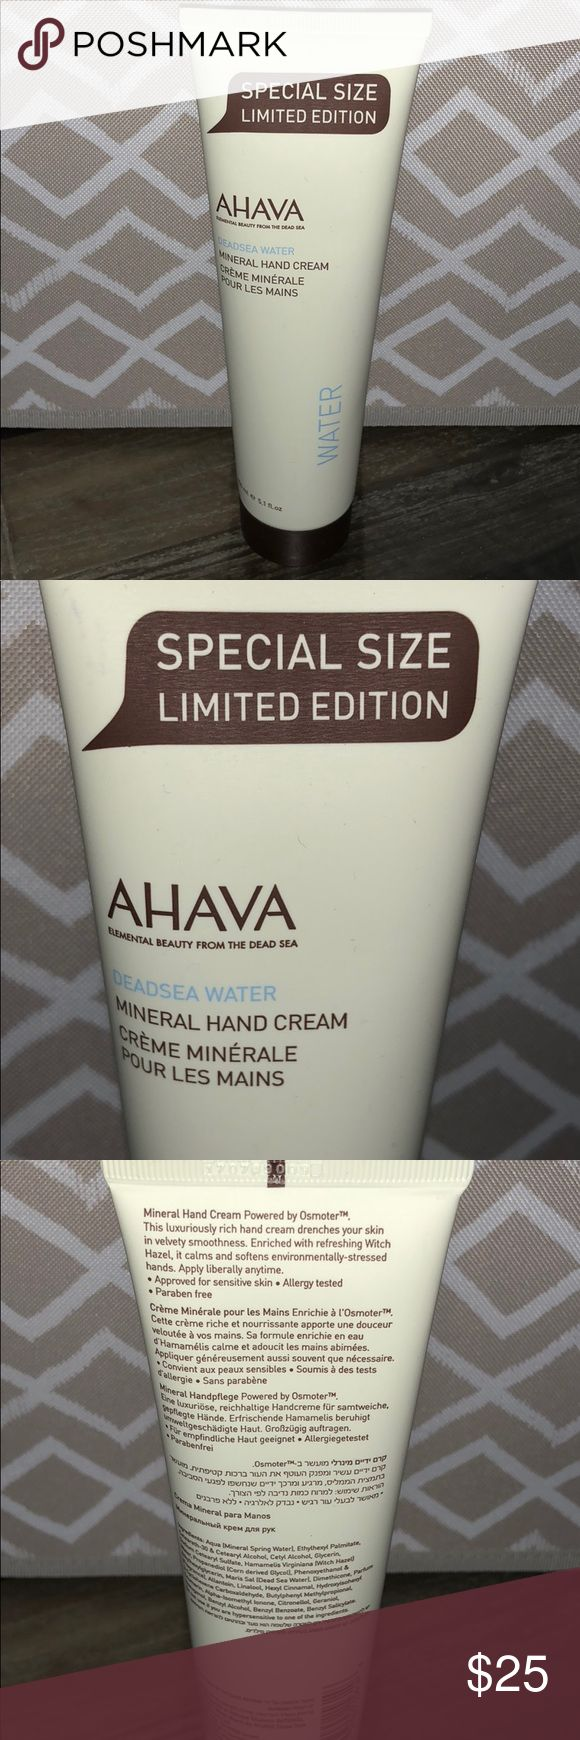 AHAVA Deadsea Water Mineral Hand Cream Never been used or opened! Comes from pet and smoke free home!   Approved for sensitive skin, allergy tested, Paraben Free. AHAVA Other